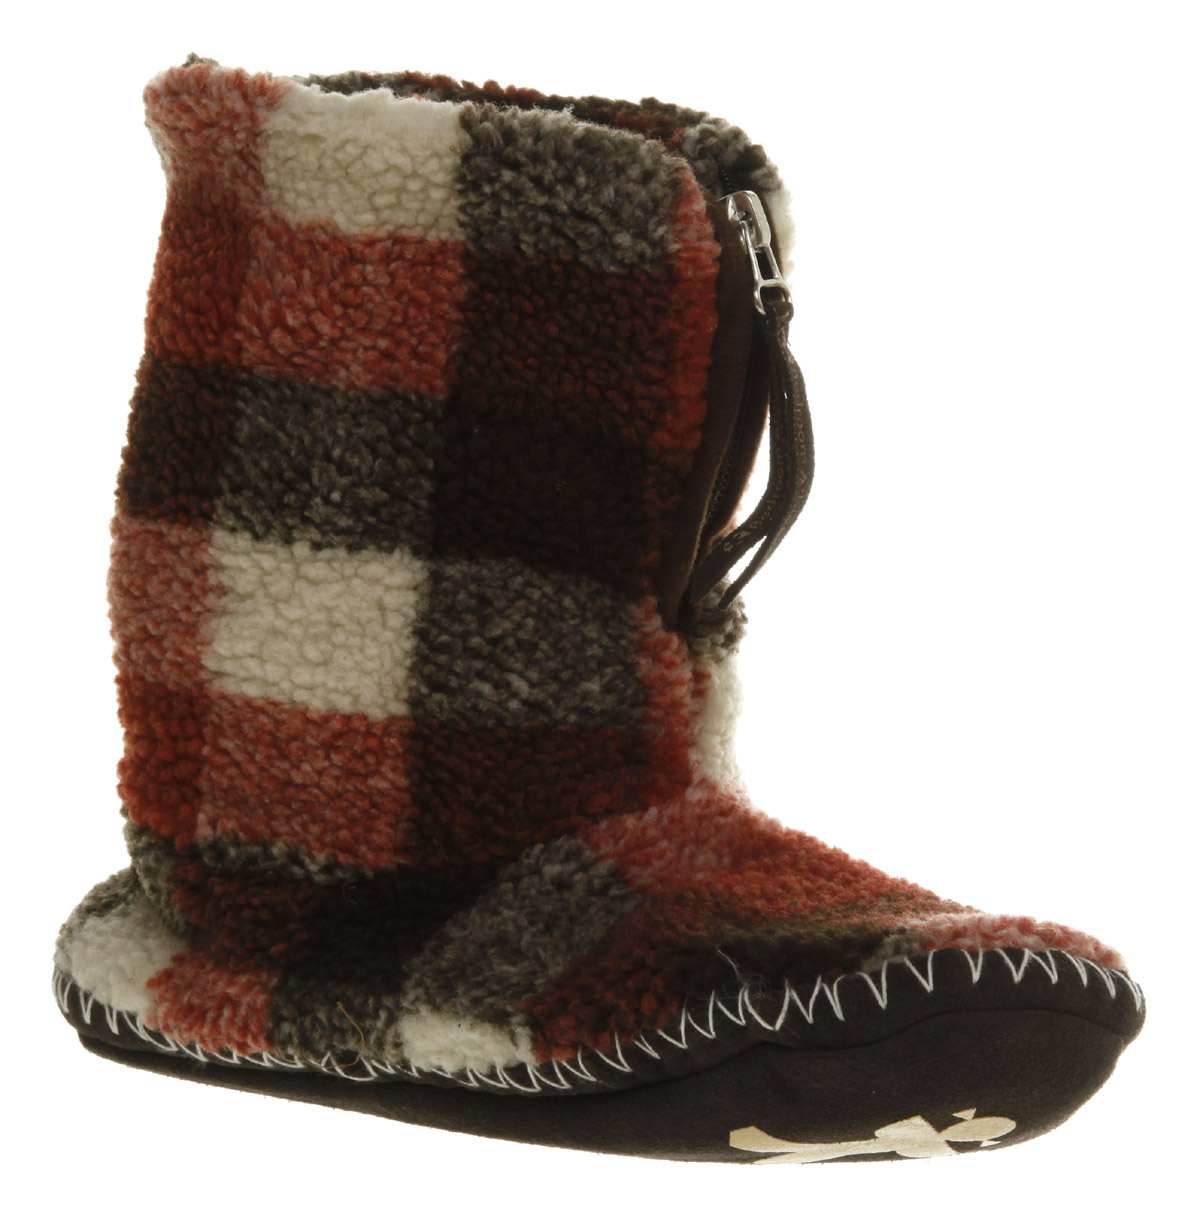 Womens-Bedroom-Athletics-Macgraw-Choc-Red-Cream-Checkered-Fleece-Flat-Slippers